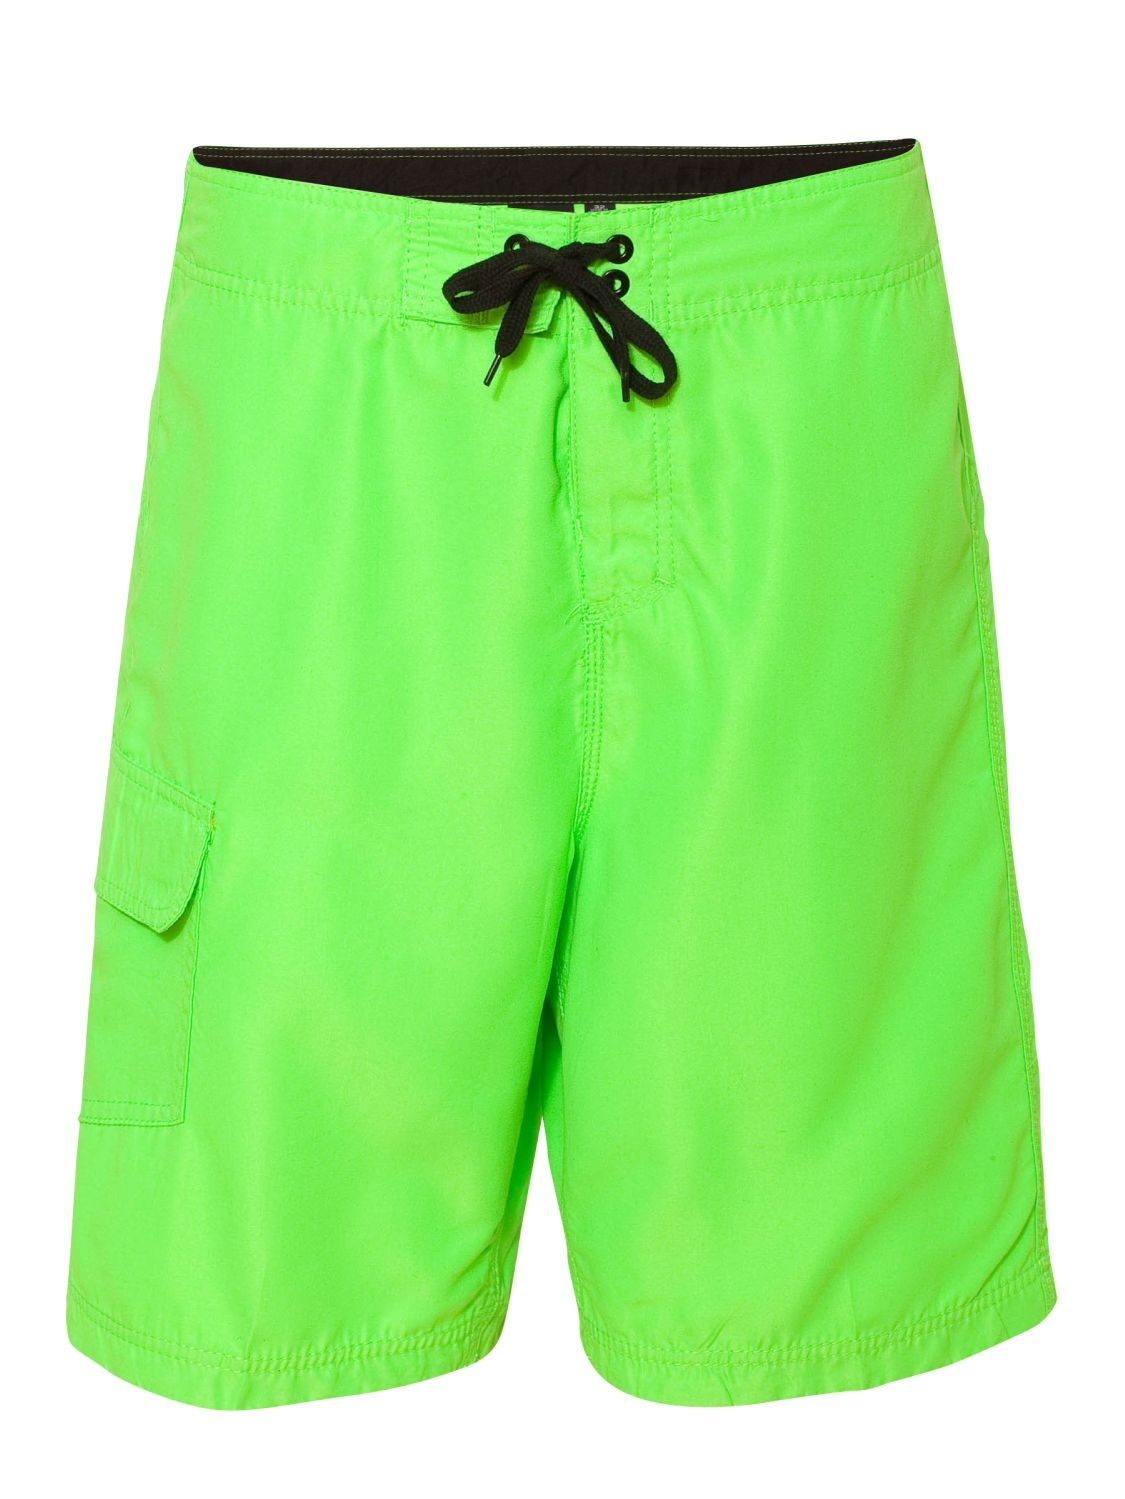 Burnside Athletics Solid Board Shorts